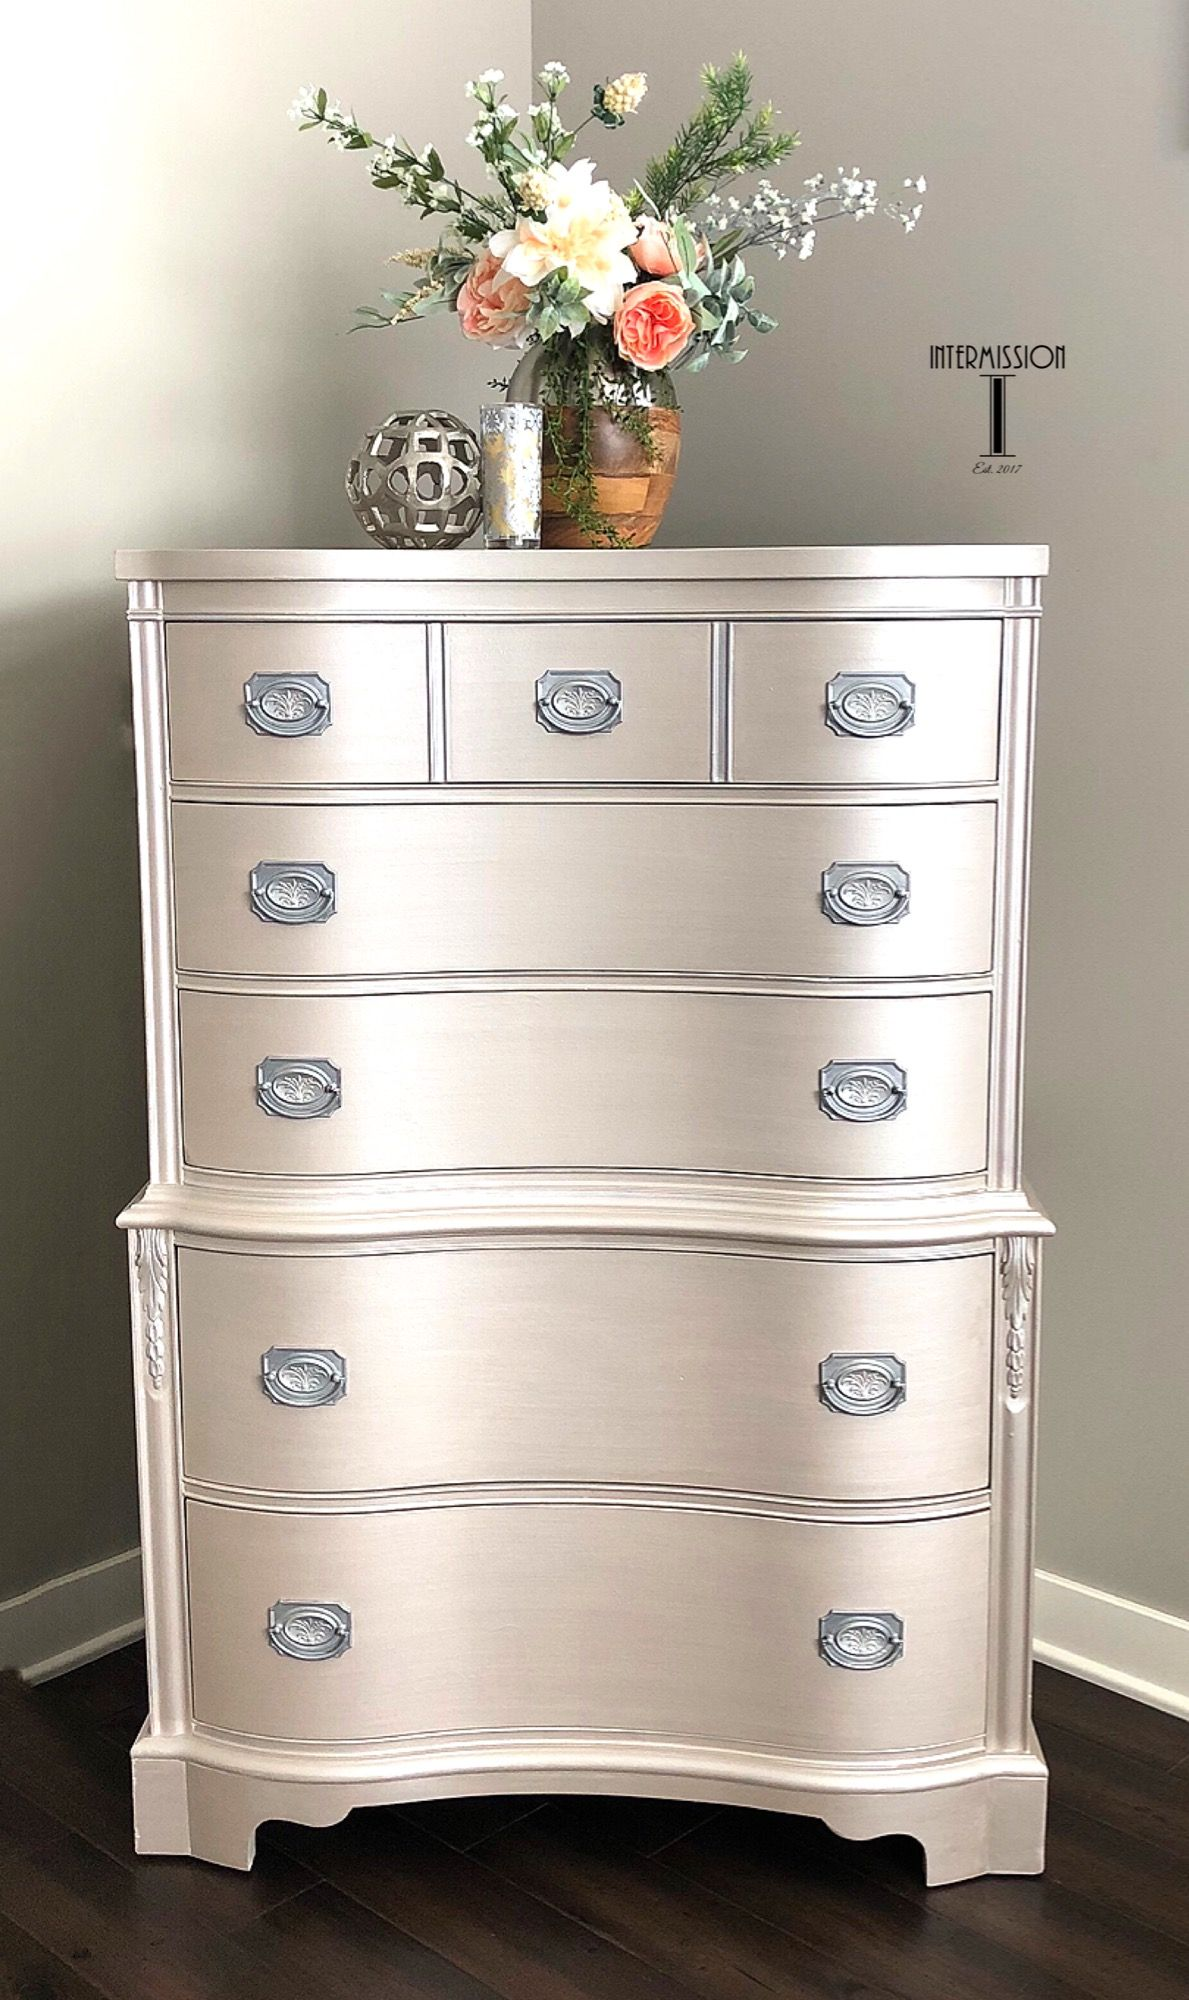 Fusion Cathedral Taupe With Metallic